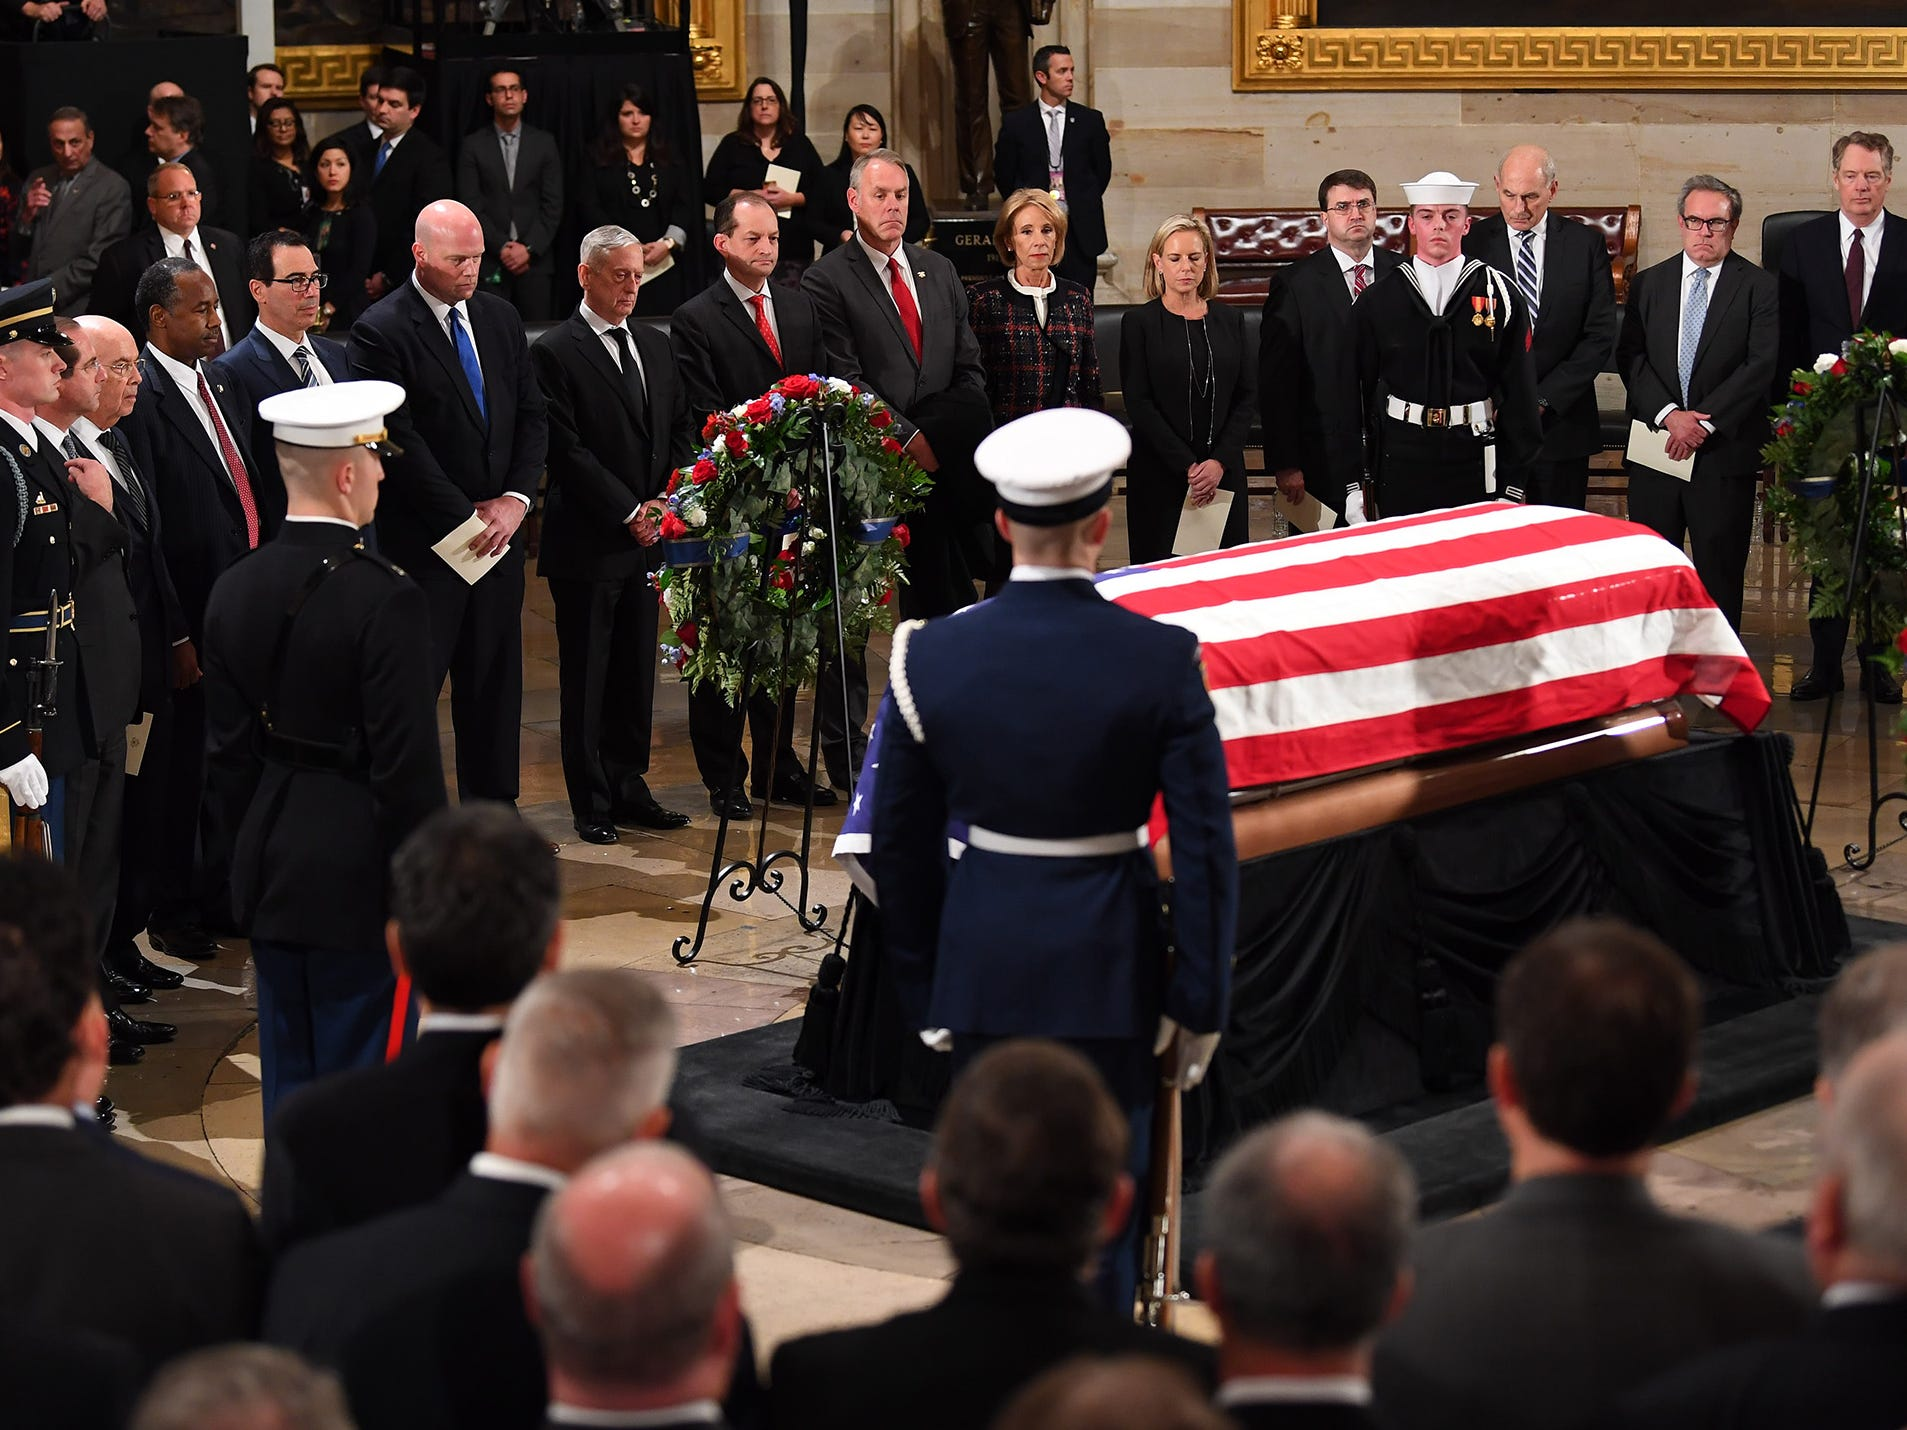 Current Cabinet members pay their respect to the former President George H.W. Bush lies at the U.S. Capitol Rotunda on Monday. The late president will lie in state until 7 a.m. Wednesday, Dec. 5, 2018.